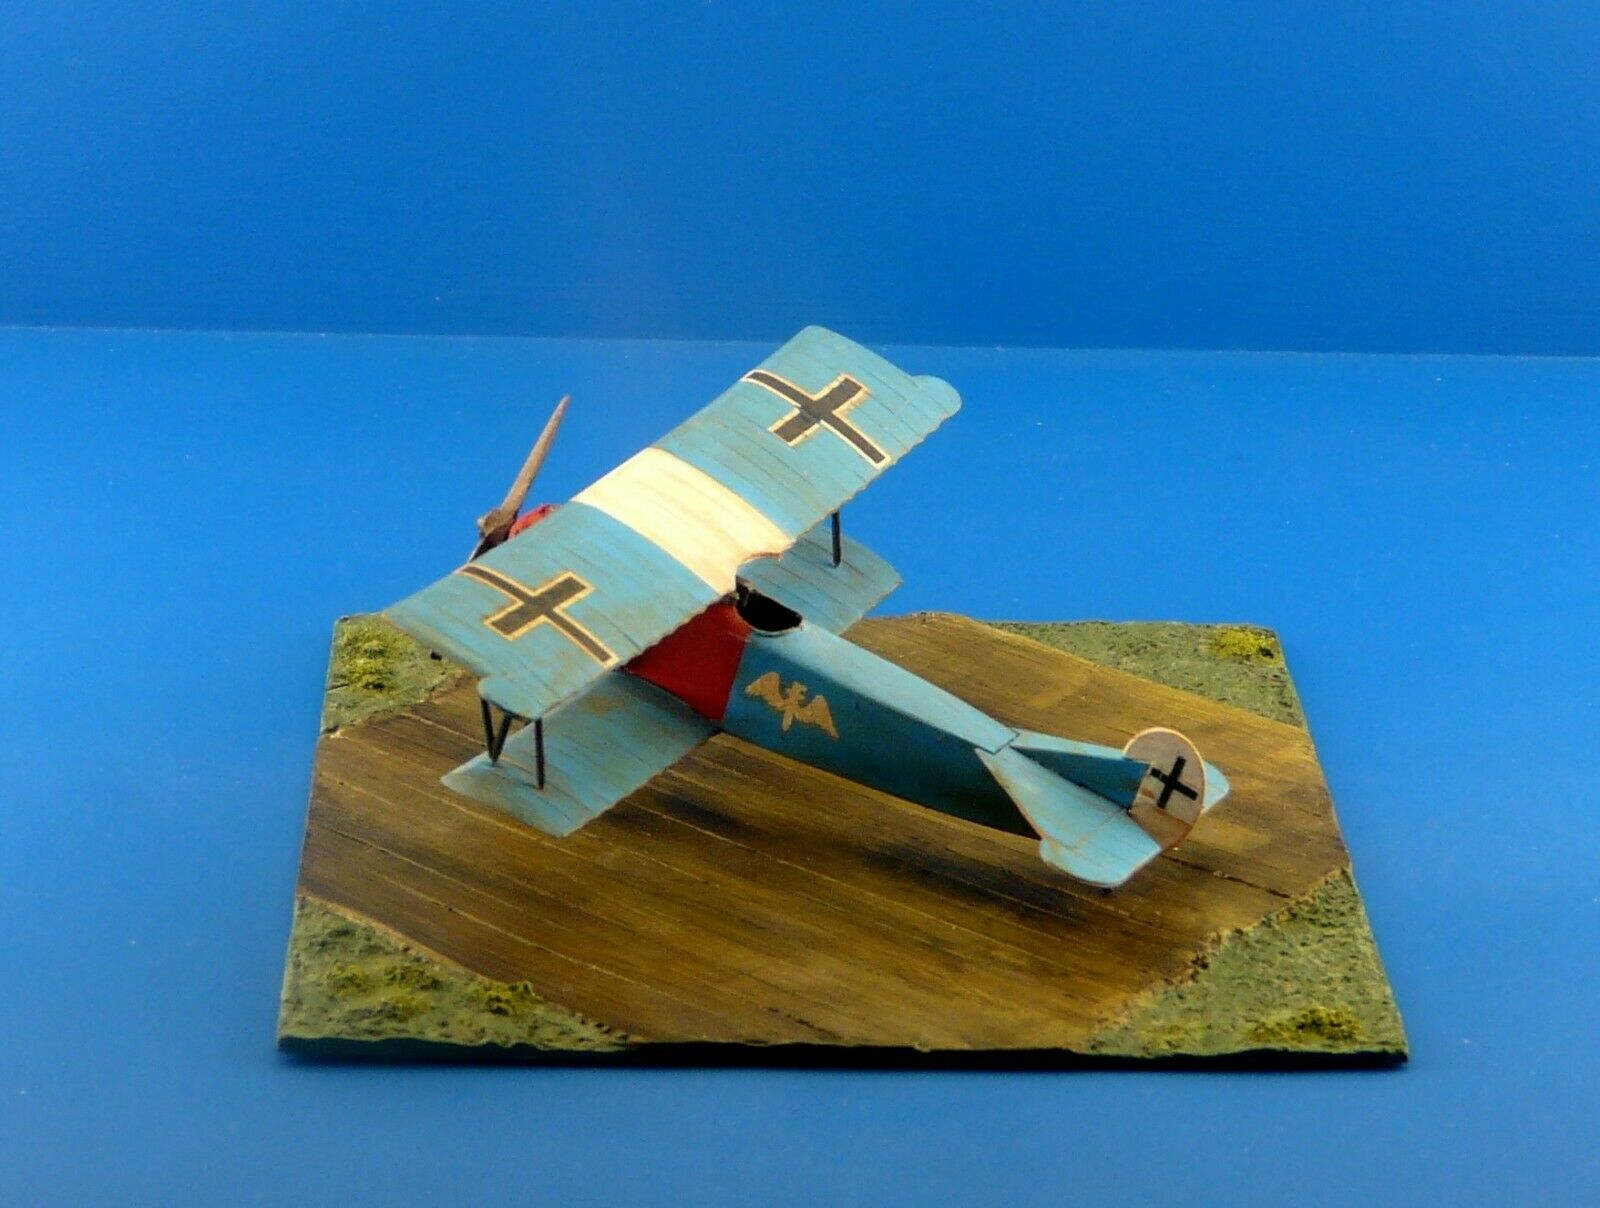 1/72 WWI Diorama Display Wooden Planks Airplane Scale Models Kits D20 - redoguk